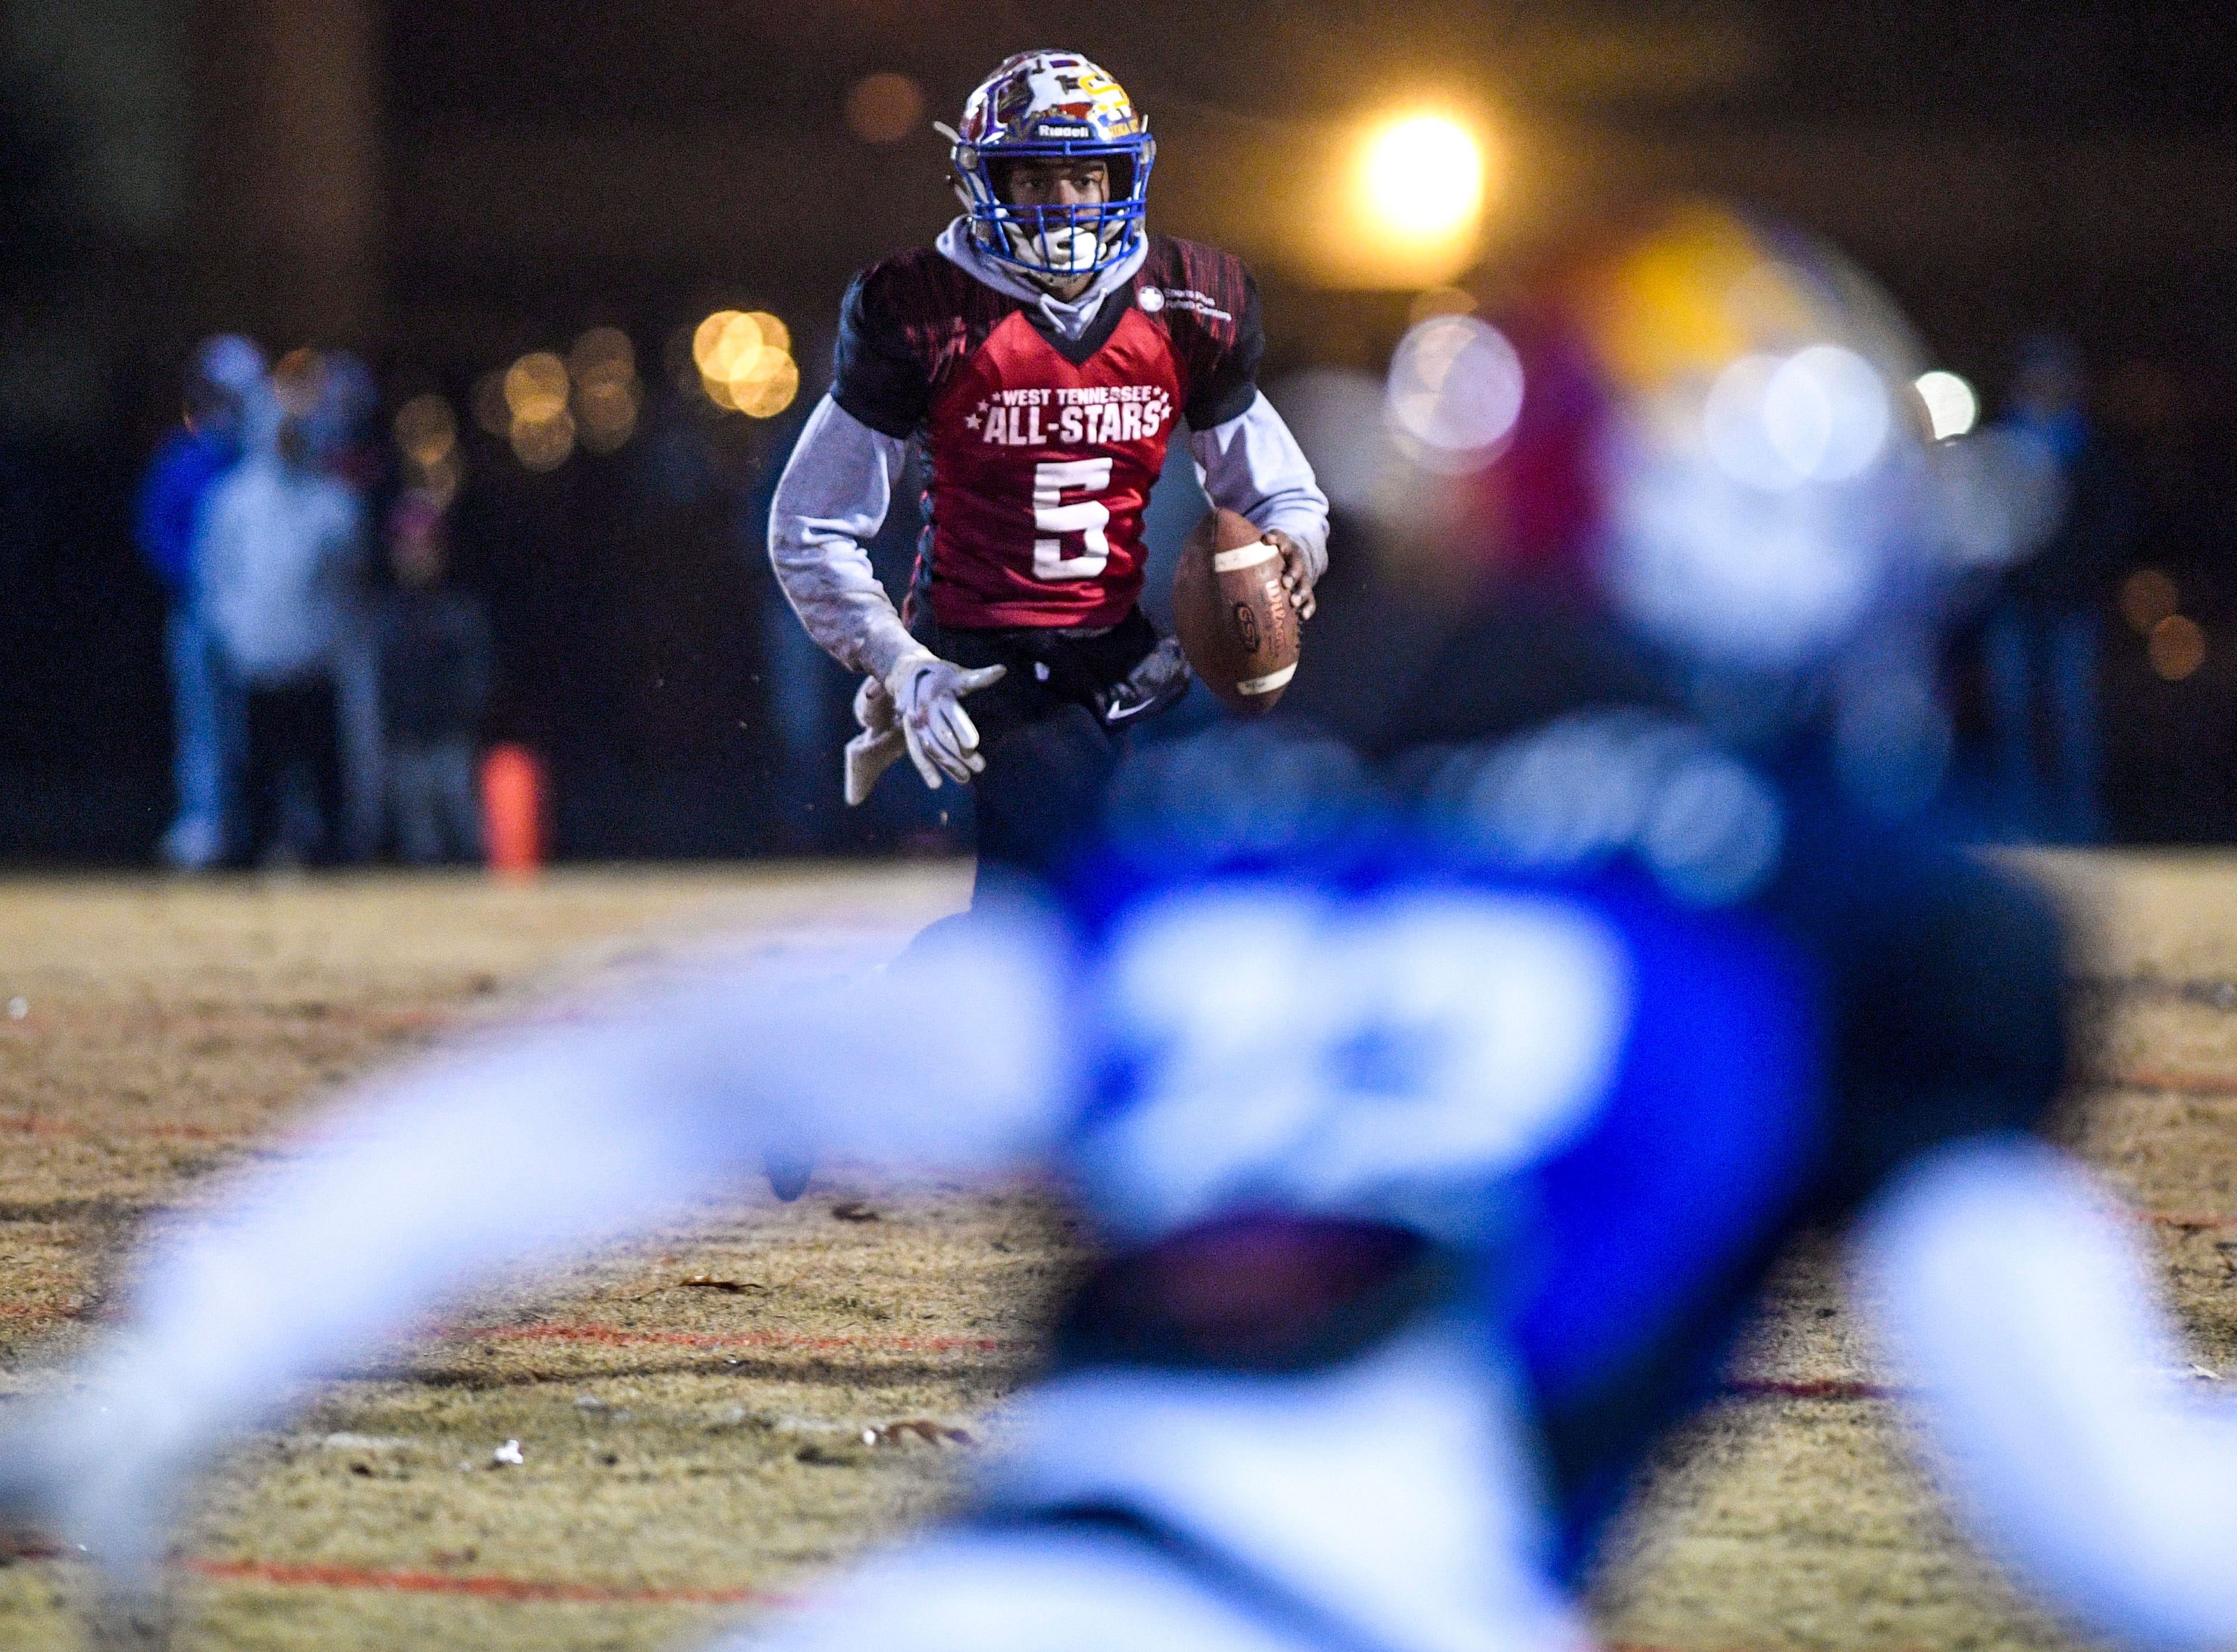 North Side's Kameron Farrington (5) looks down the field for a path through the defense during the West Tennessee All-Star football game at University School of Jackson in Jackson, Tenn., on Friday, Dec. 7, 2018.